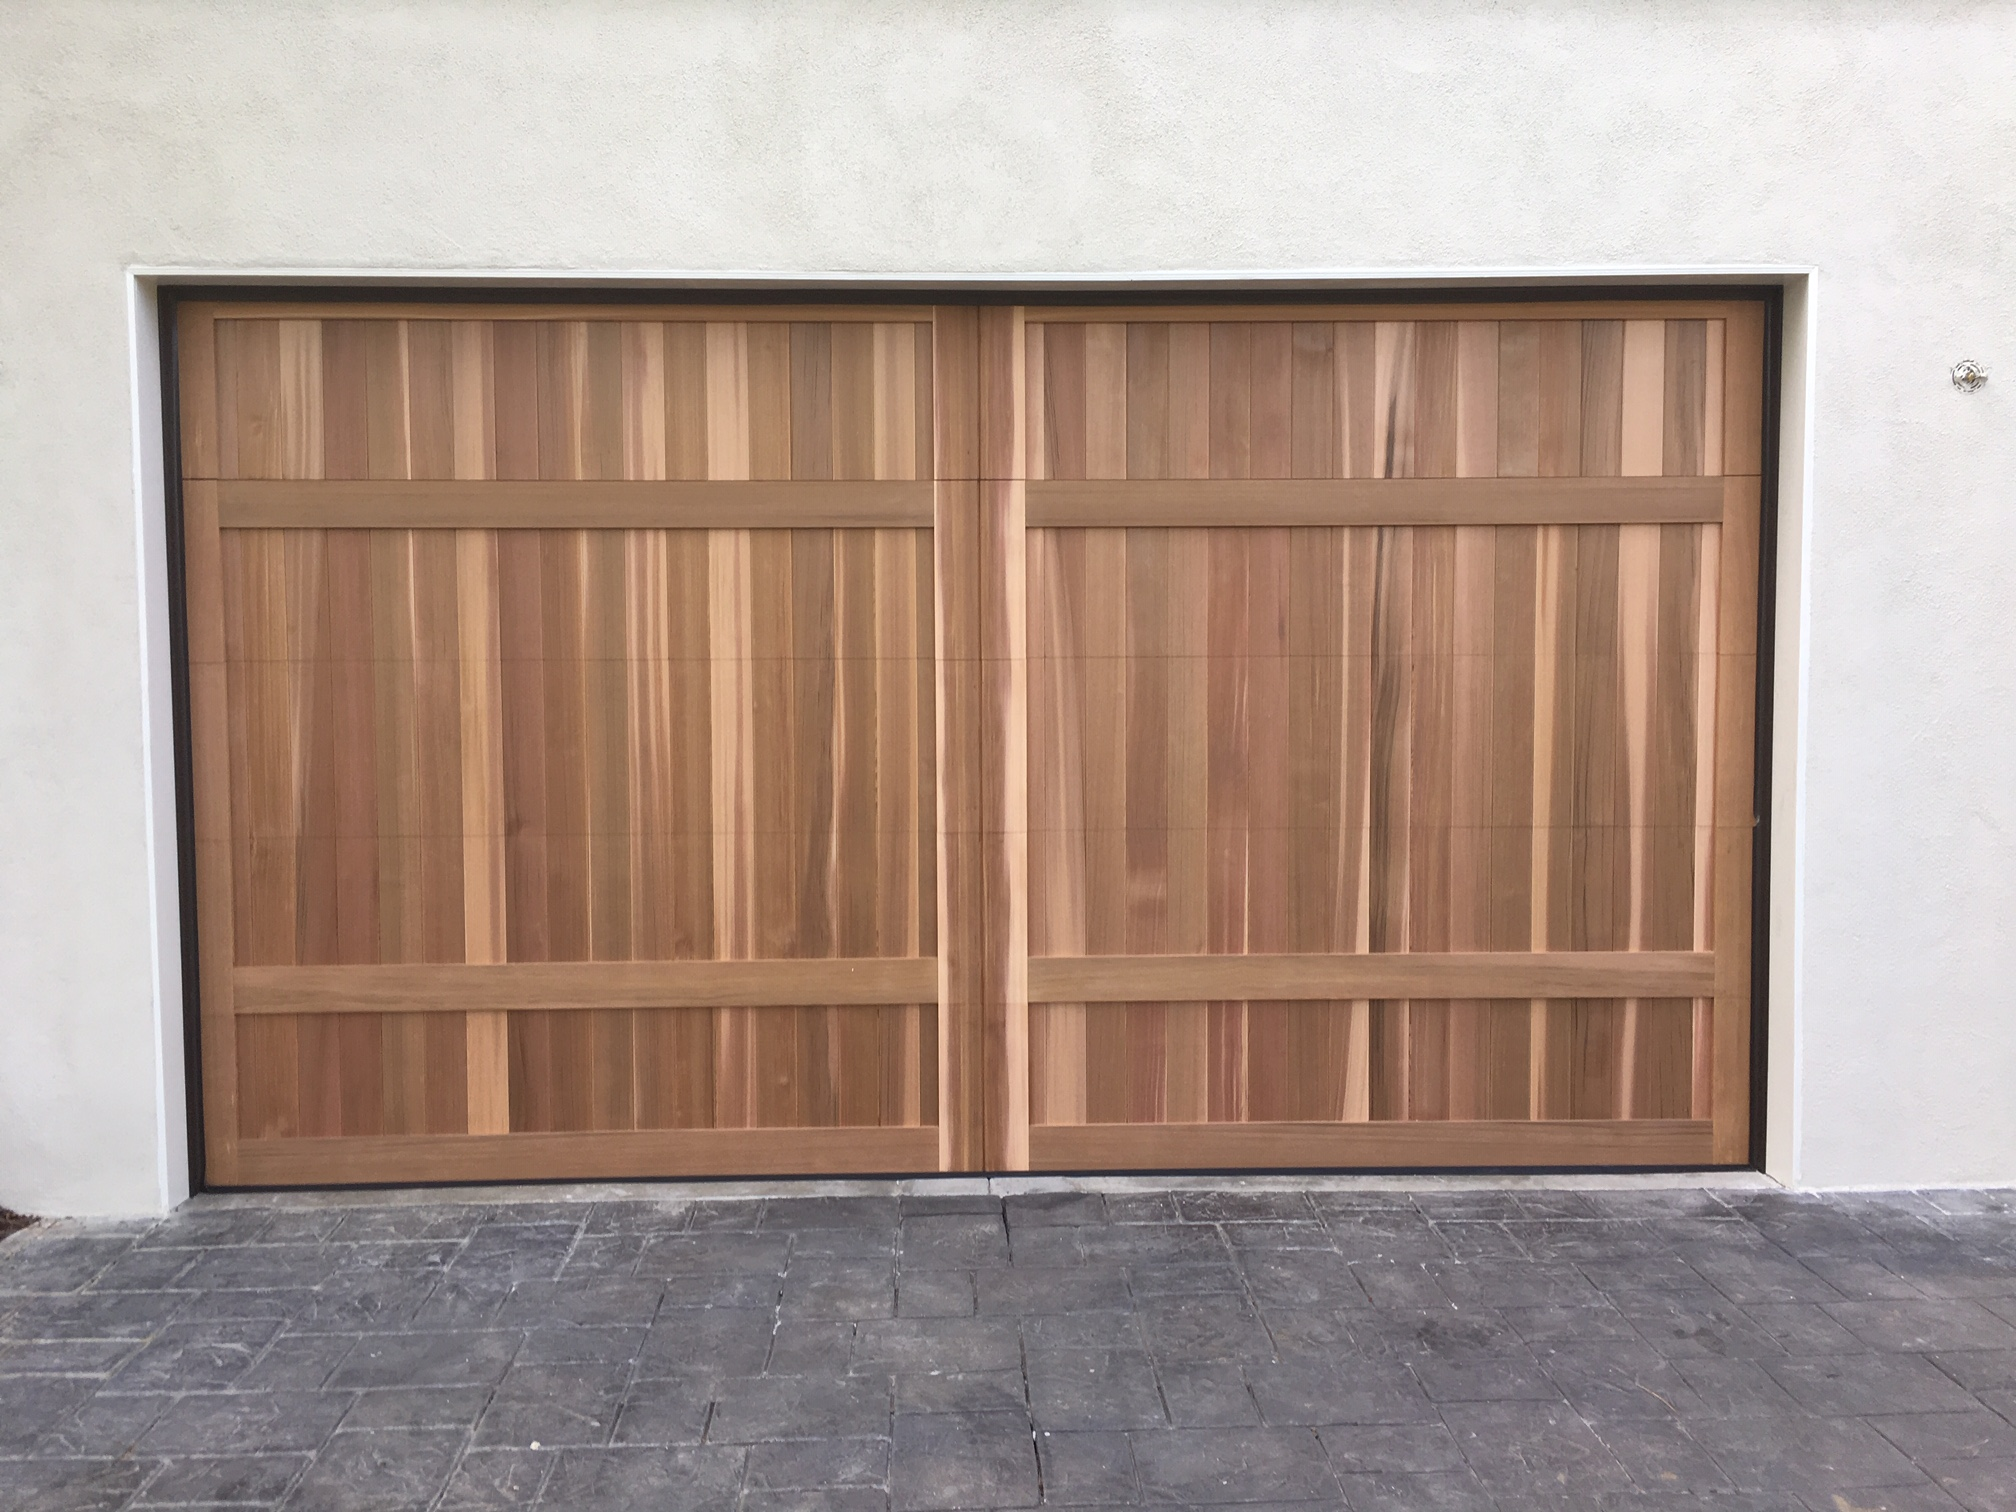 Craftsman Garage Door in Santa Monica California